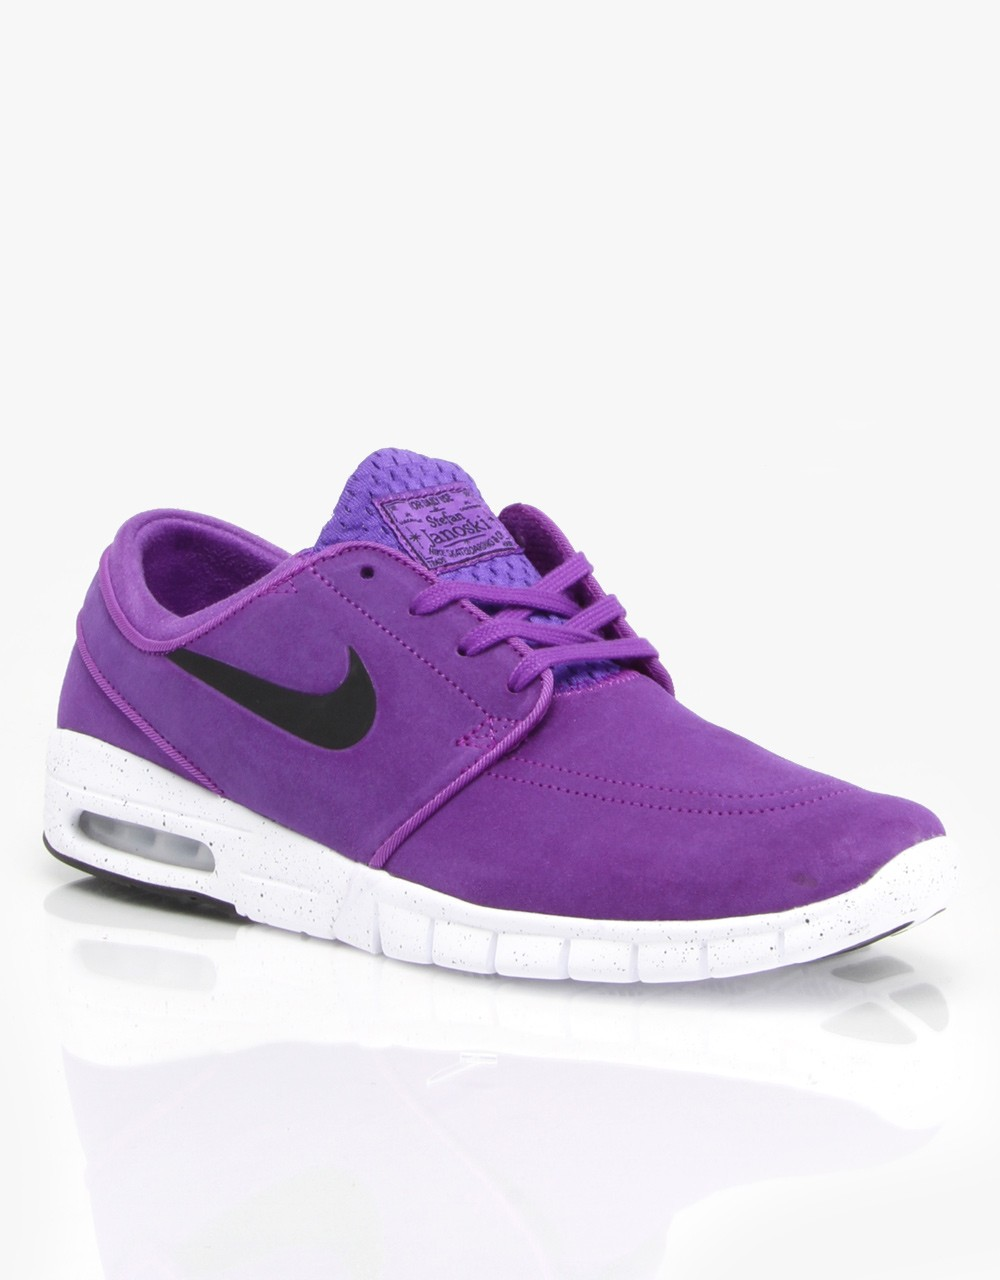 Nike SB Stefan Janoski Max L Suede Hyper Grape Black White Shoe